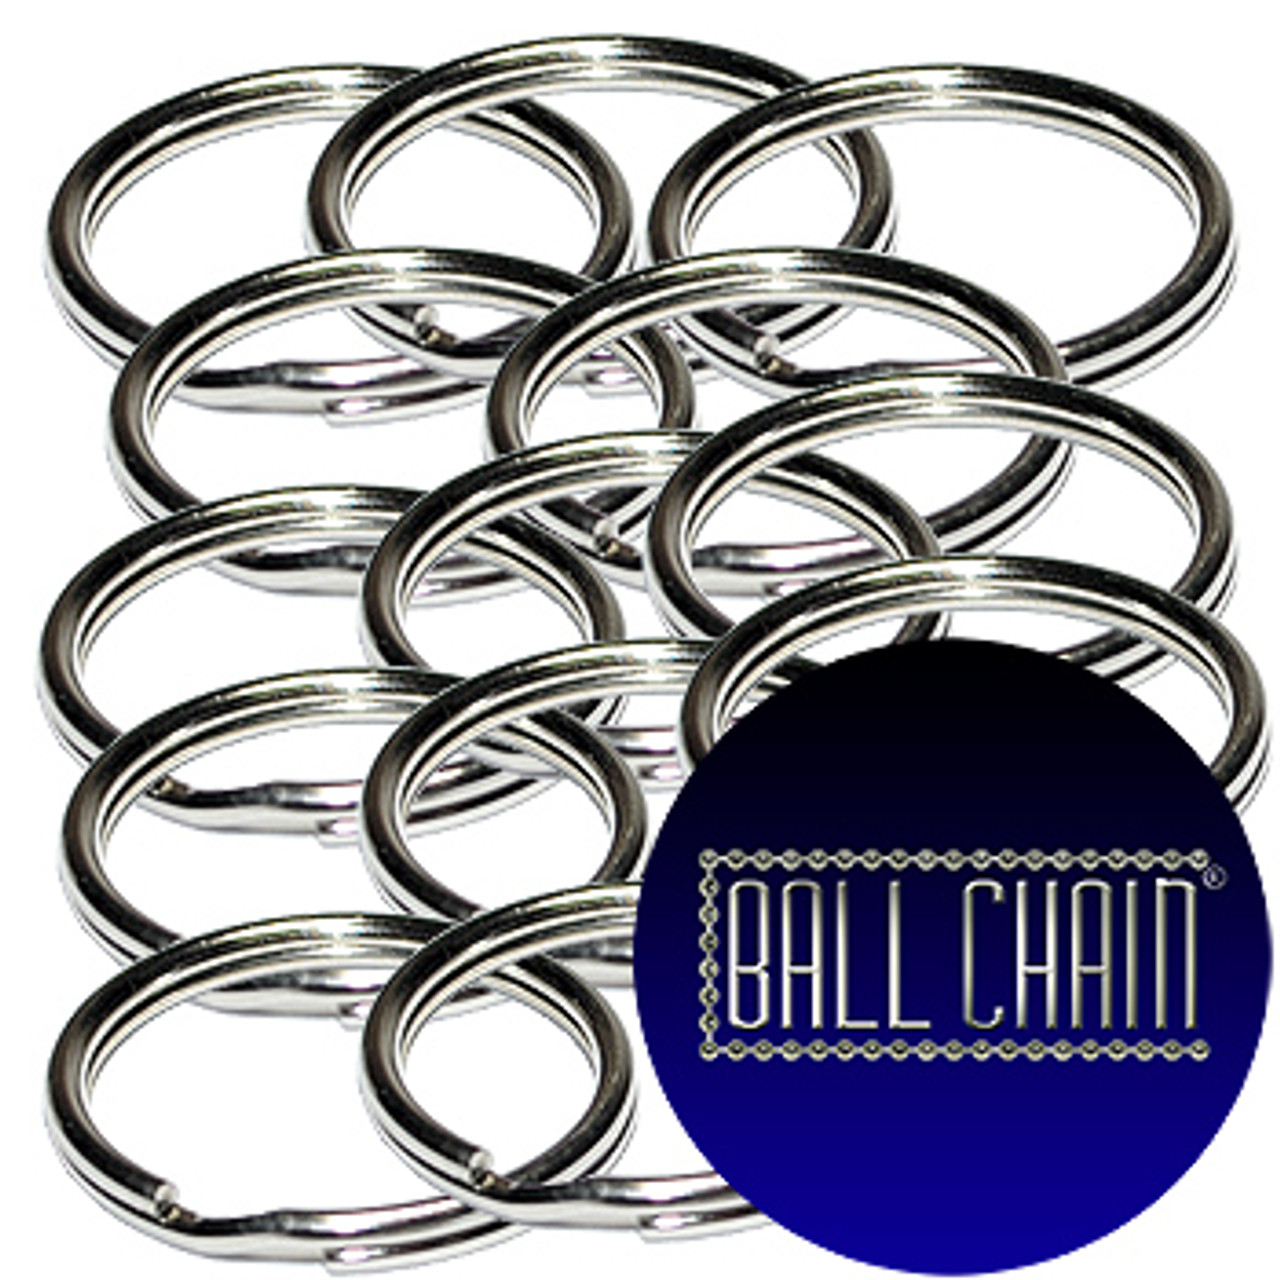 10mm Nickel Plated Steel Split Key Rings